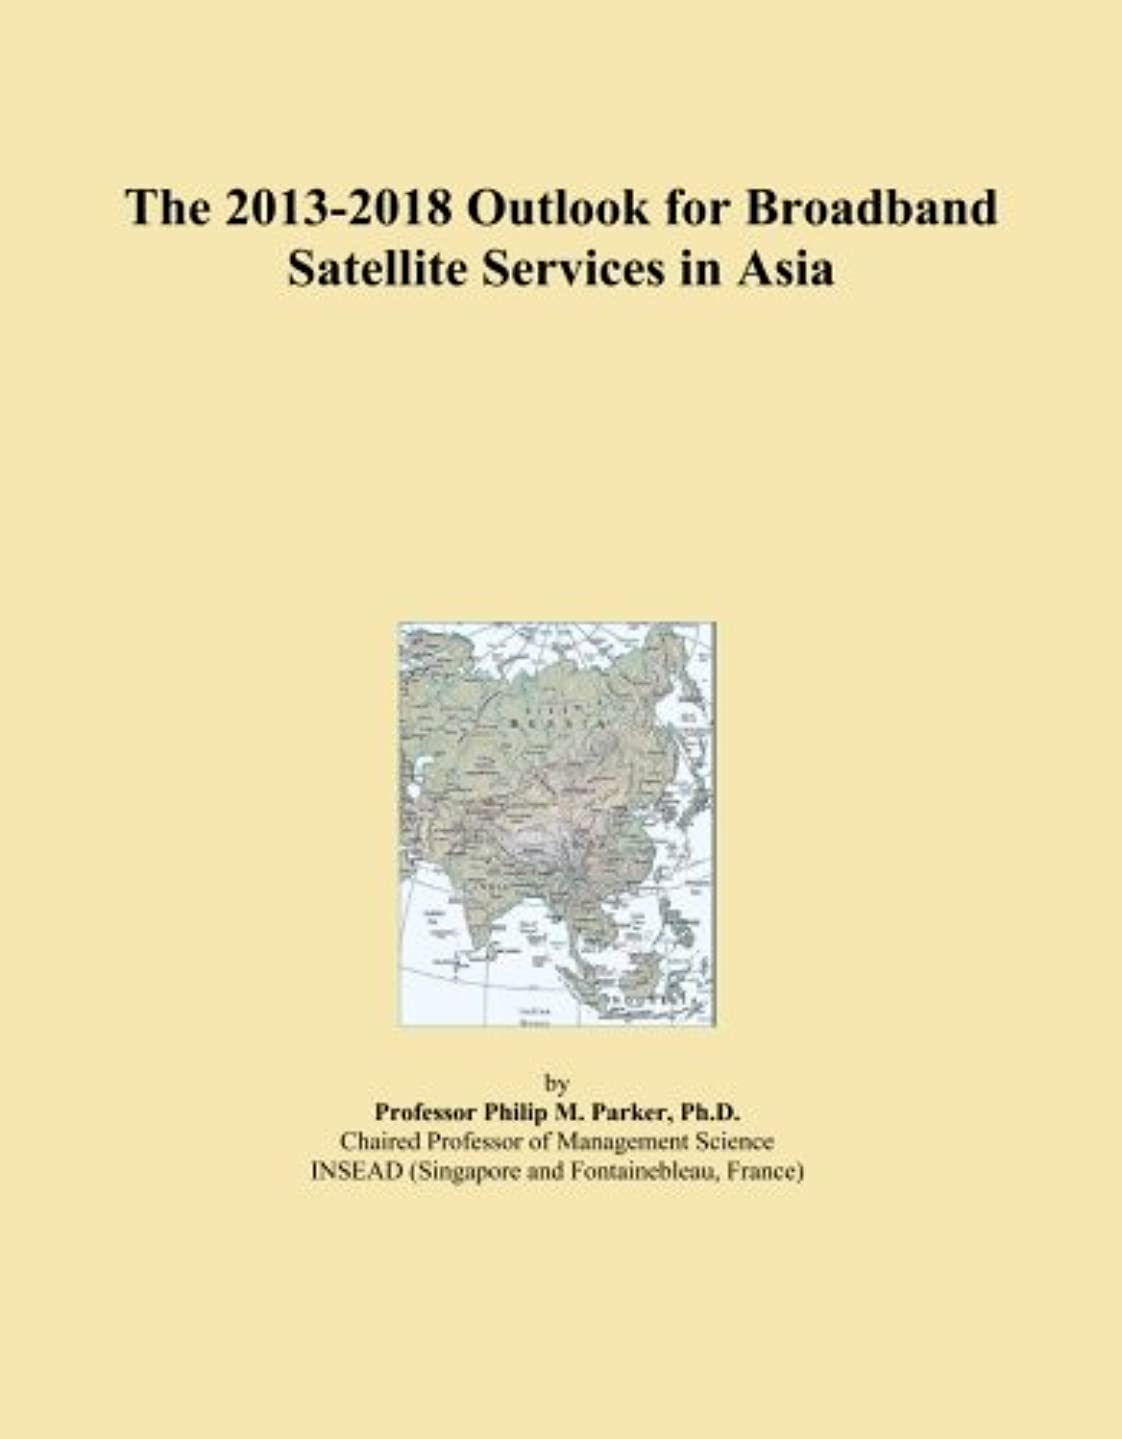 The 2013-2018 Outlook for Broadband Satellite Services in Asia